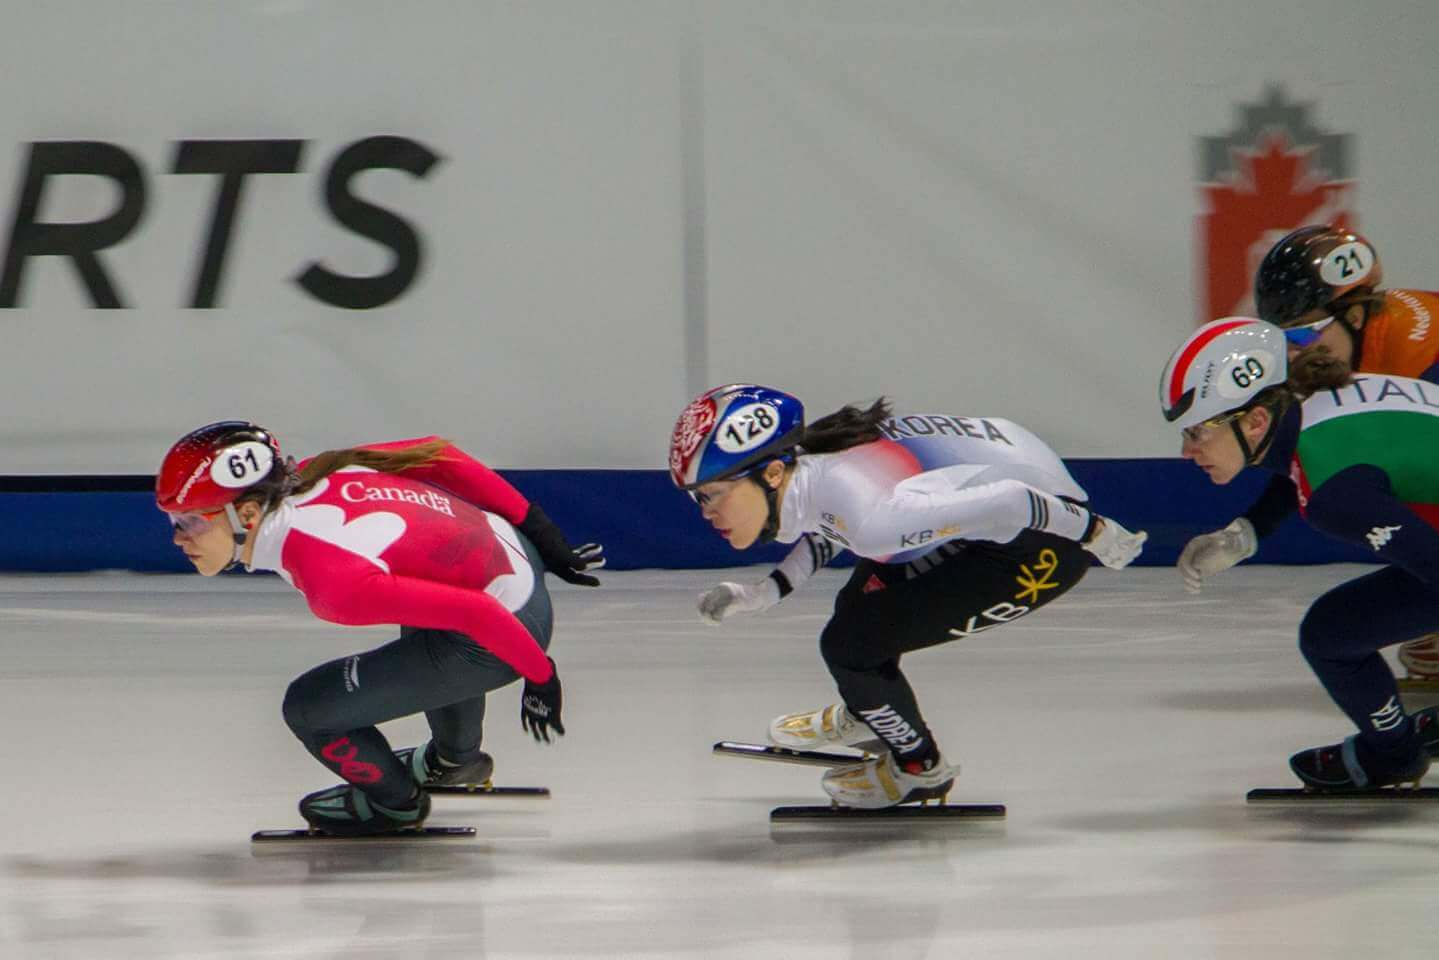 Kasandra Bradette in the middle of a speed skating competition